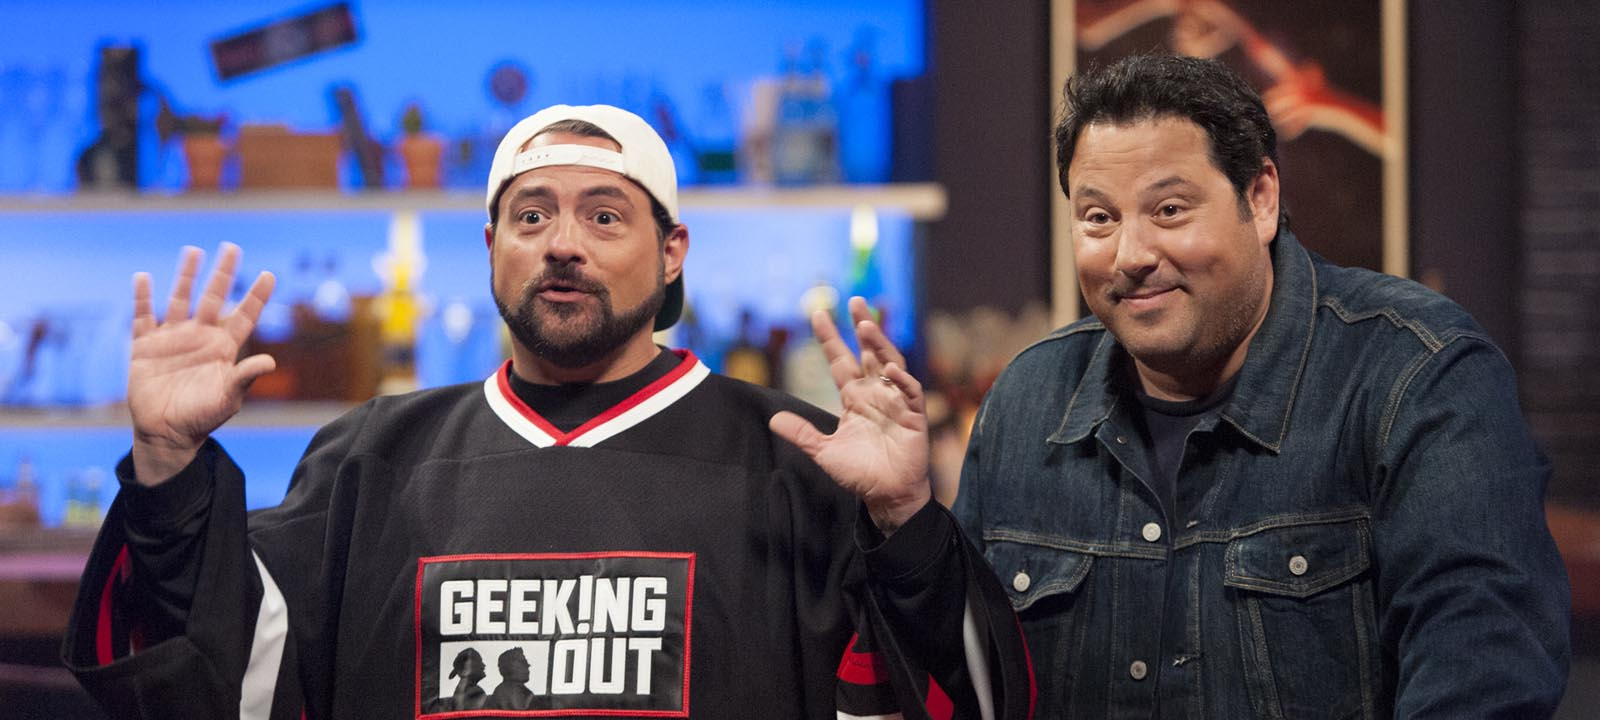 geeking-out-kevin-smith-greg-grunberg-alternate-key-art-800×600